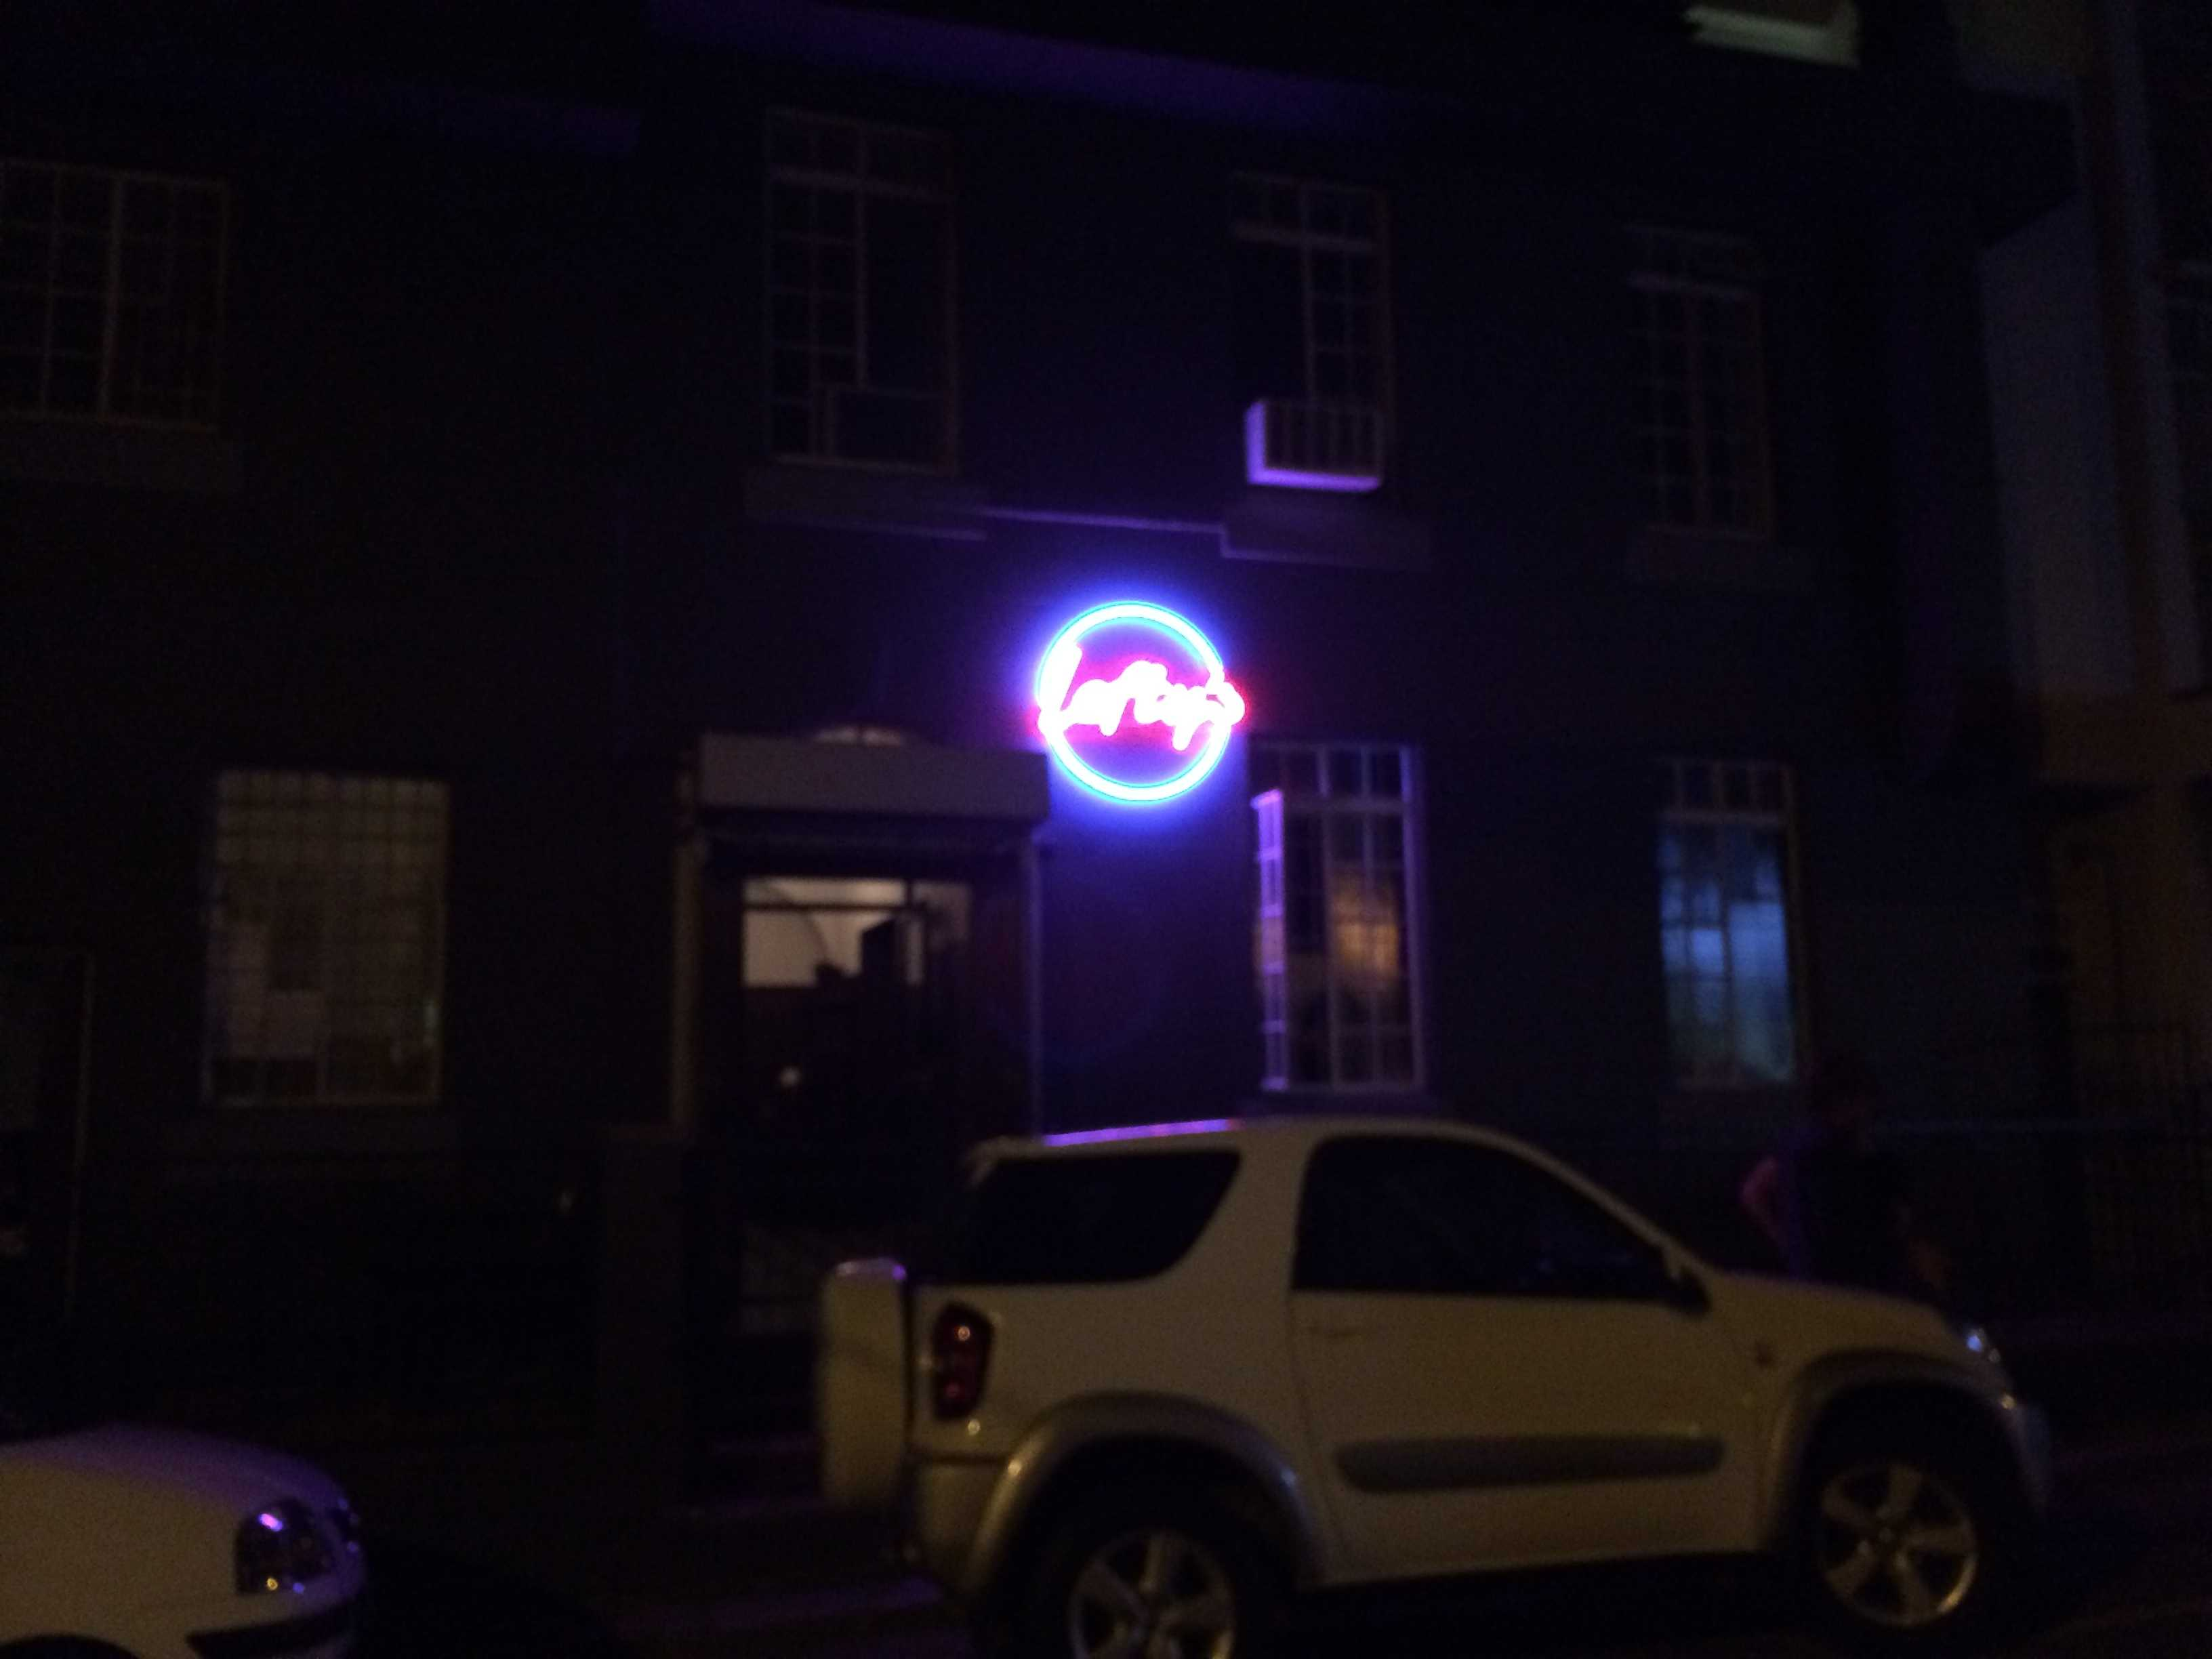 Blue and Pink Florescent Sign above dark door way